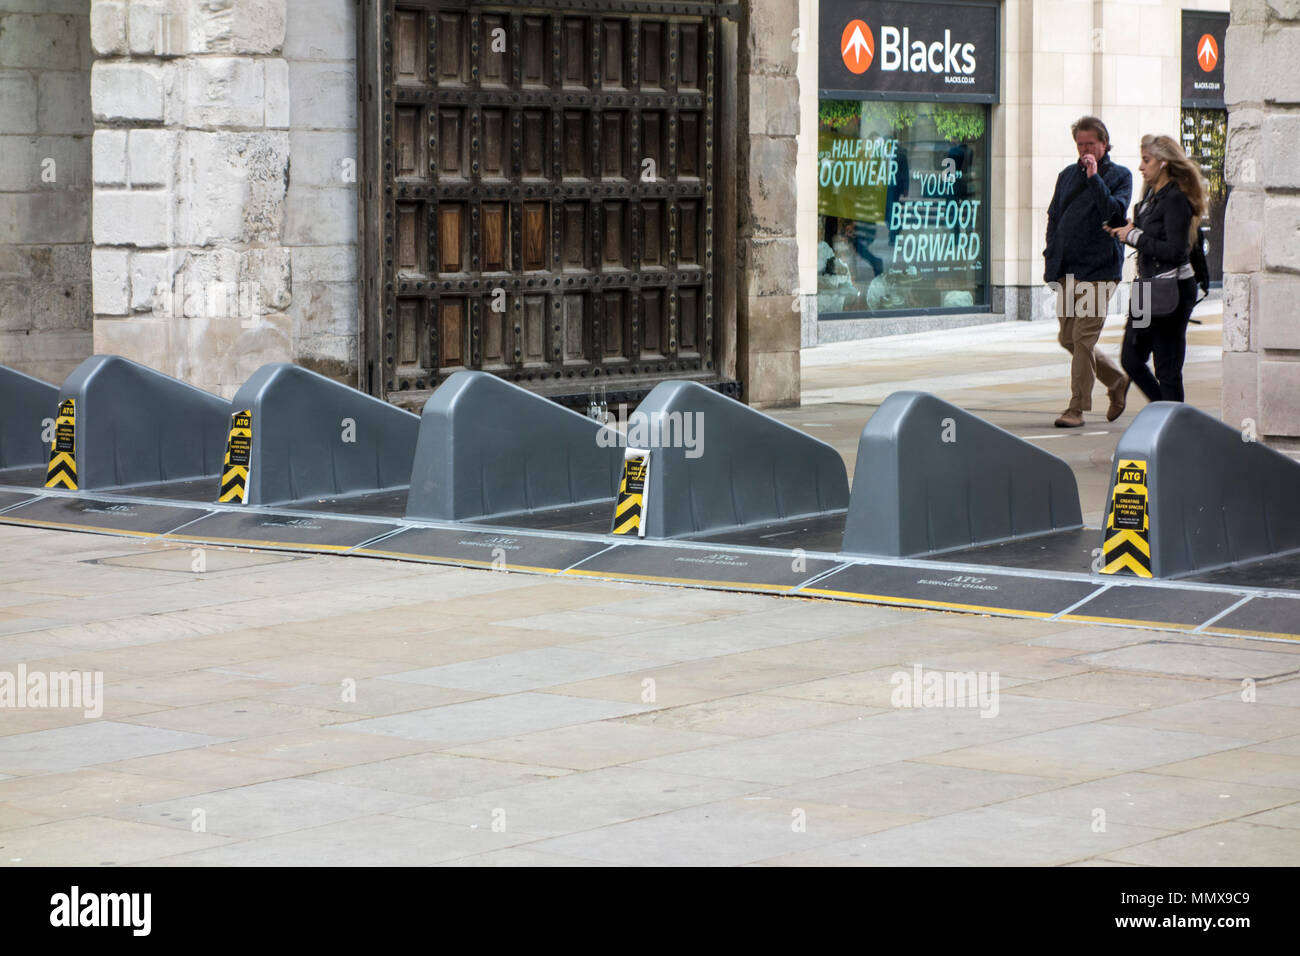 Anti-terrorist security barriers in Paternoster Square, City of London, UK - Stock Image